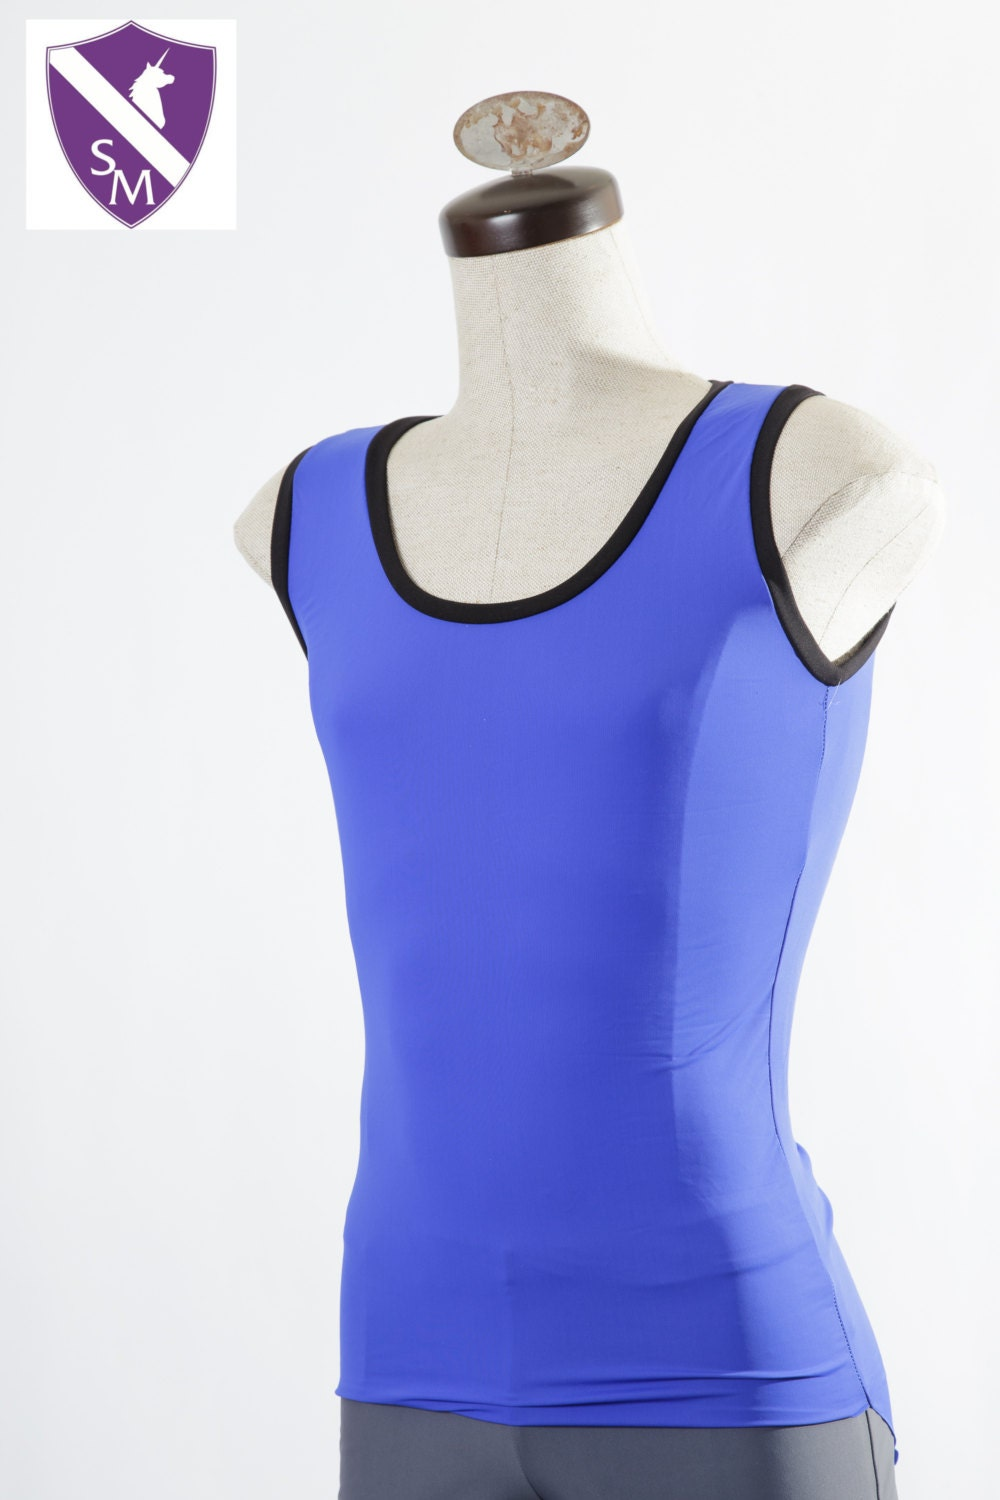 edm clothing edc neon tank tight tank top blank by